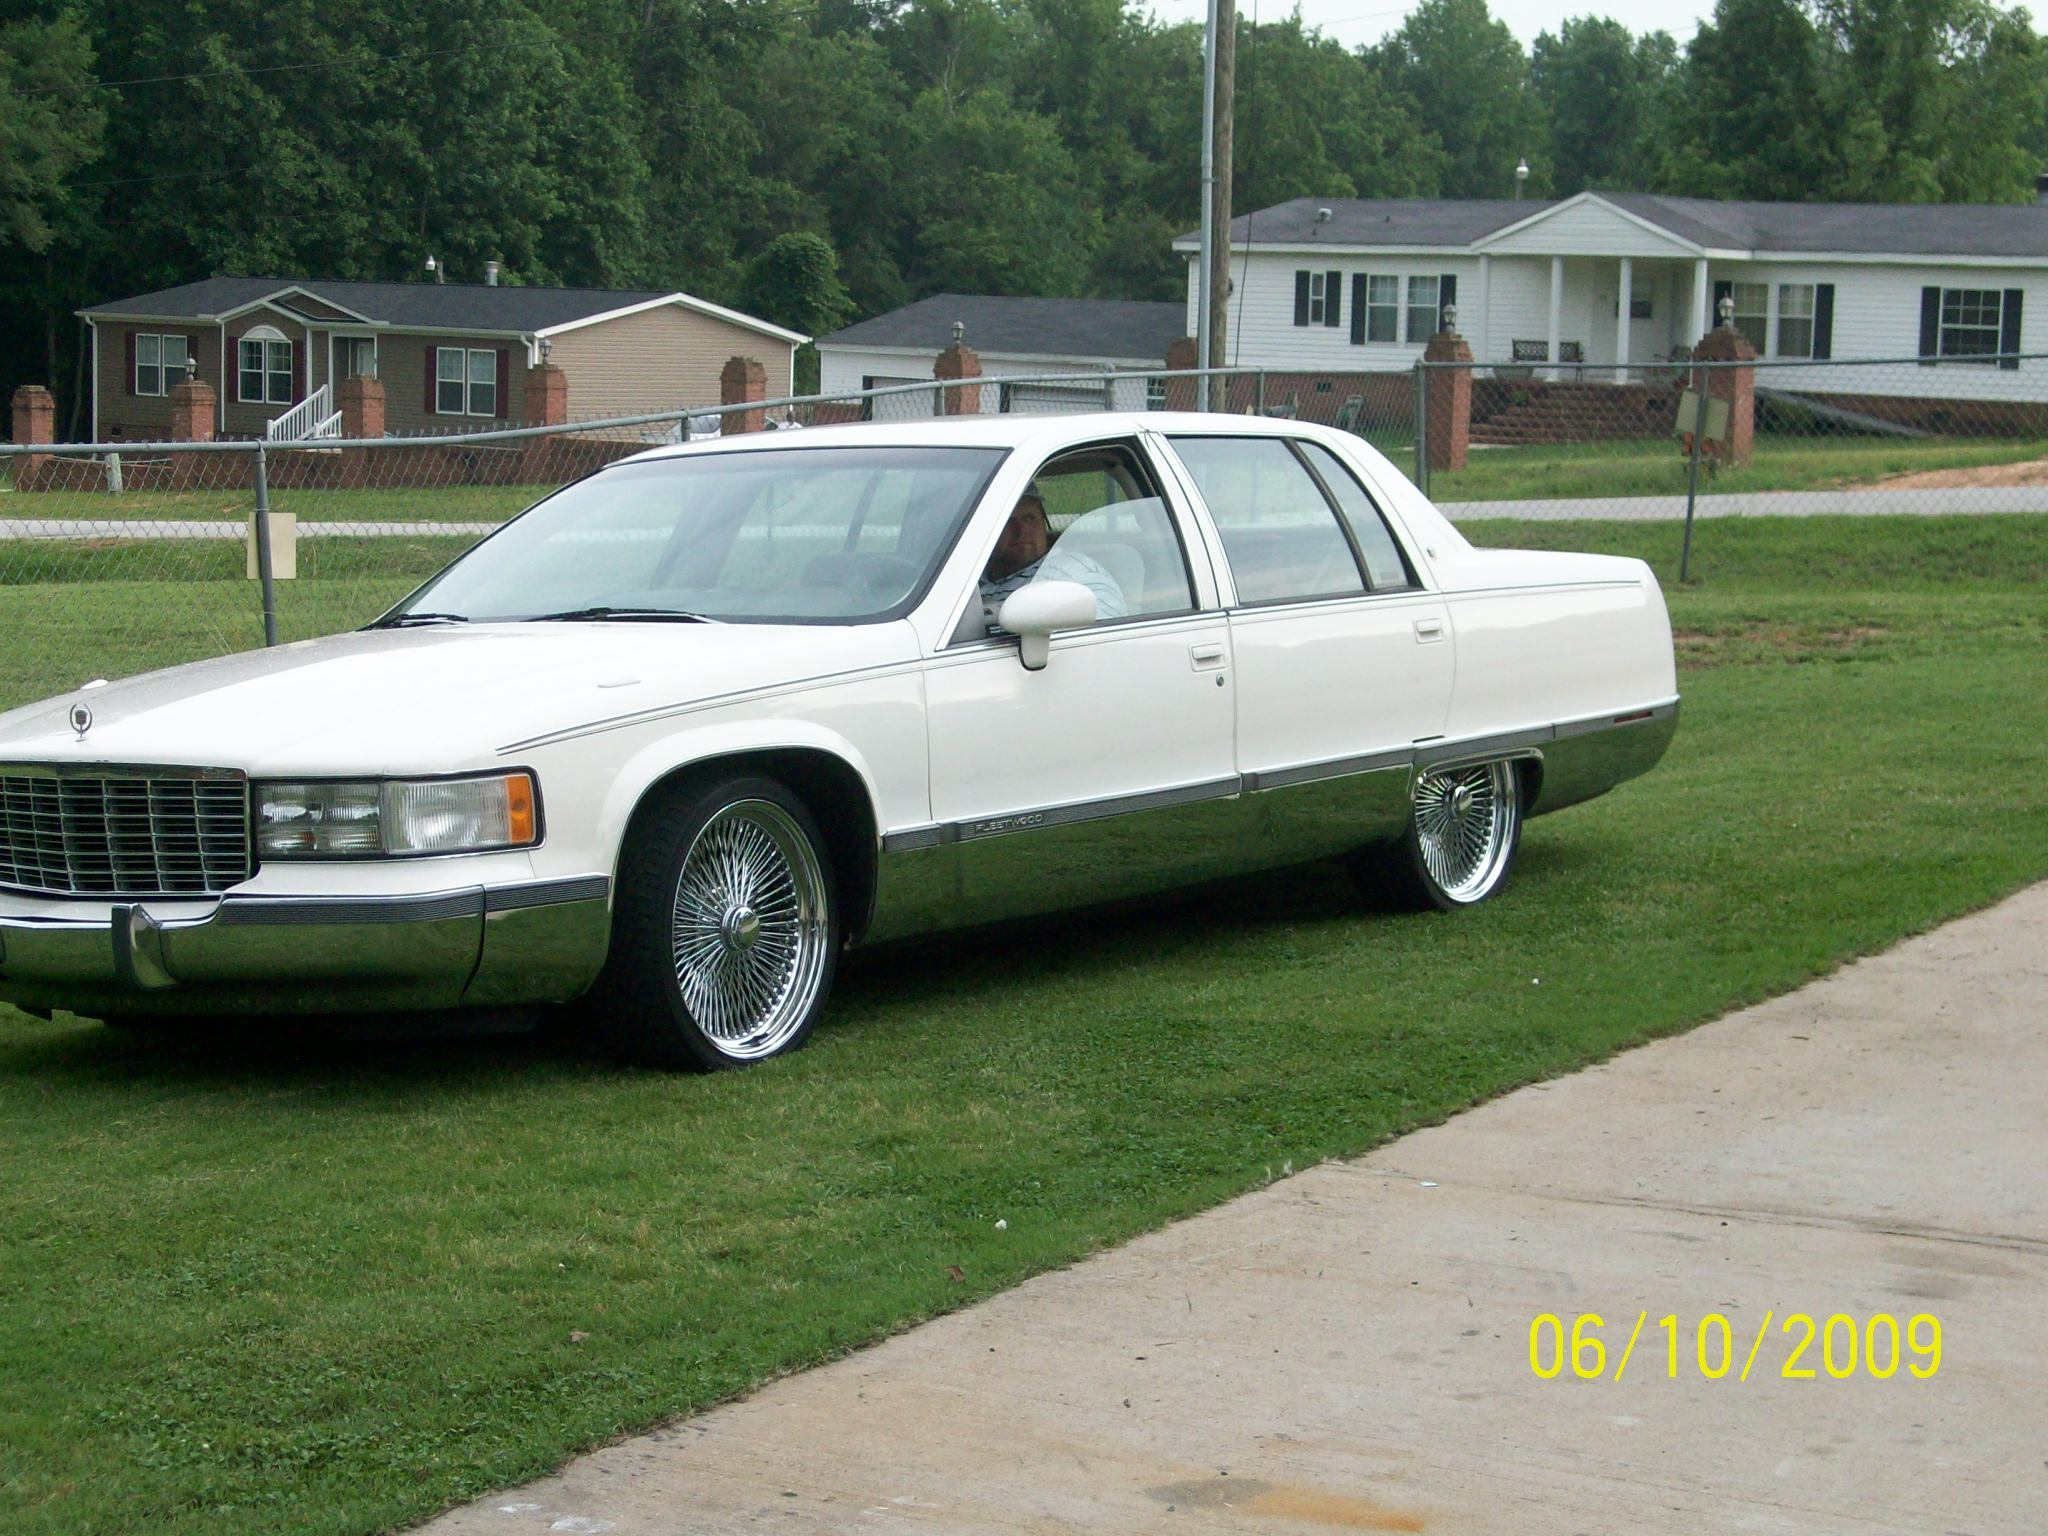 wendells93 39 s 1993 cadillac fleetwood in greenville sc. Cars Review. Best American Auto & Cars Review